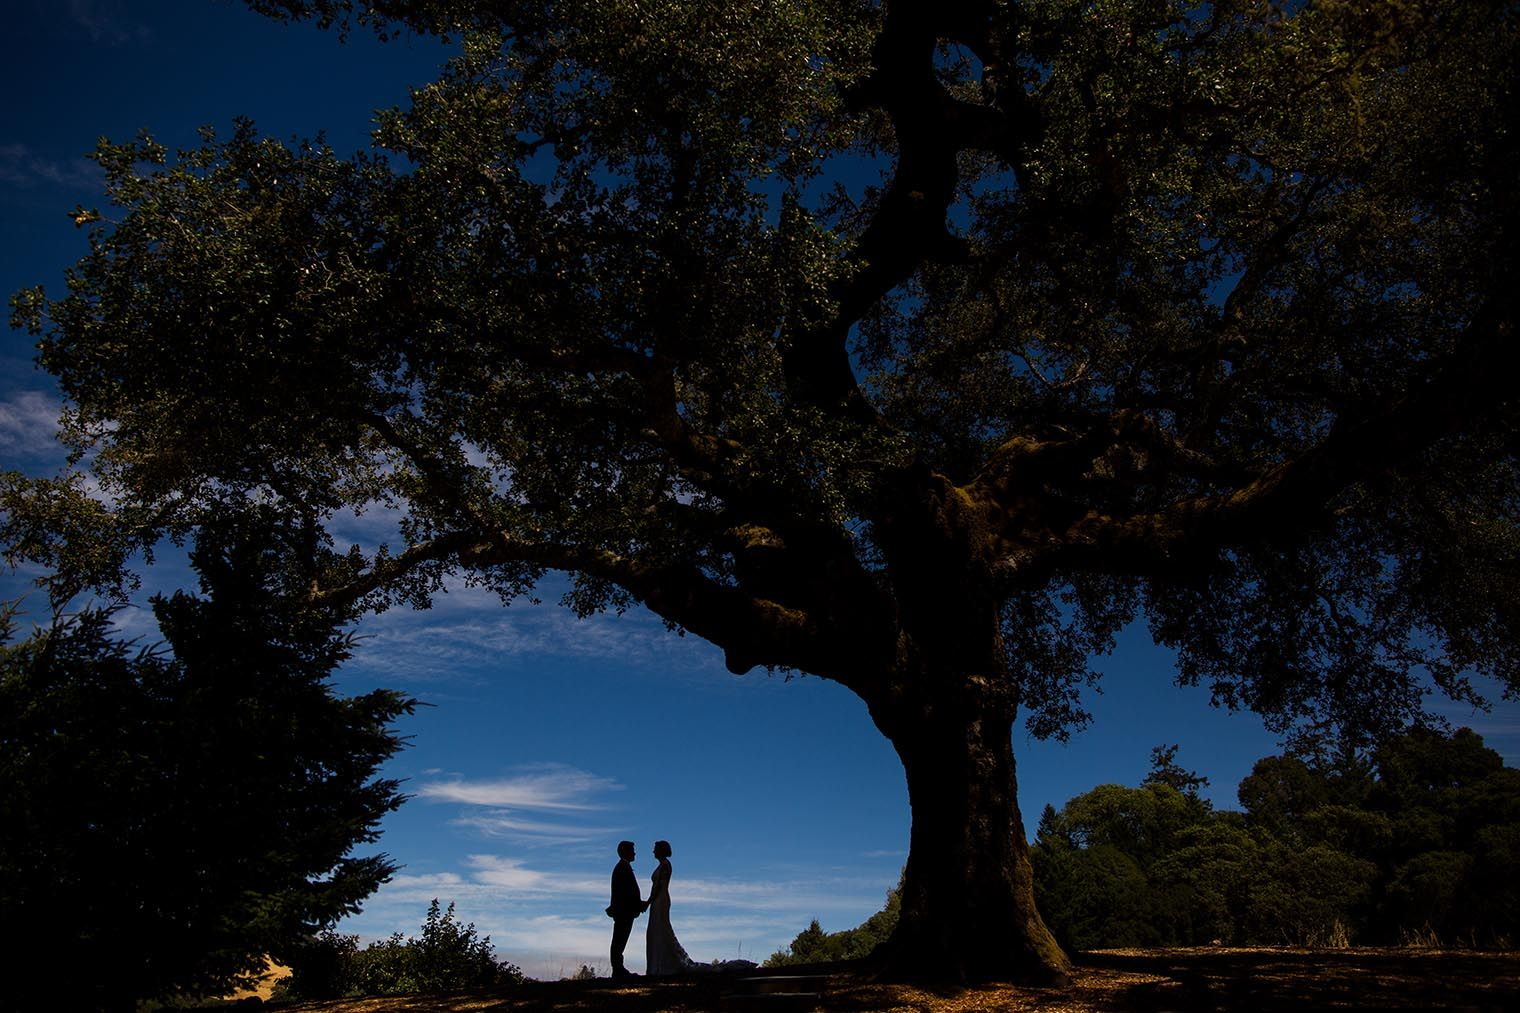 22 photo opportunities rustic mountain house estate weddingi venues northern california